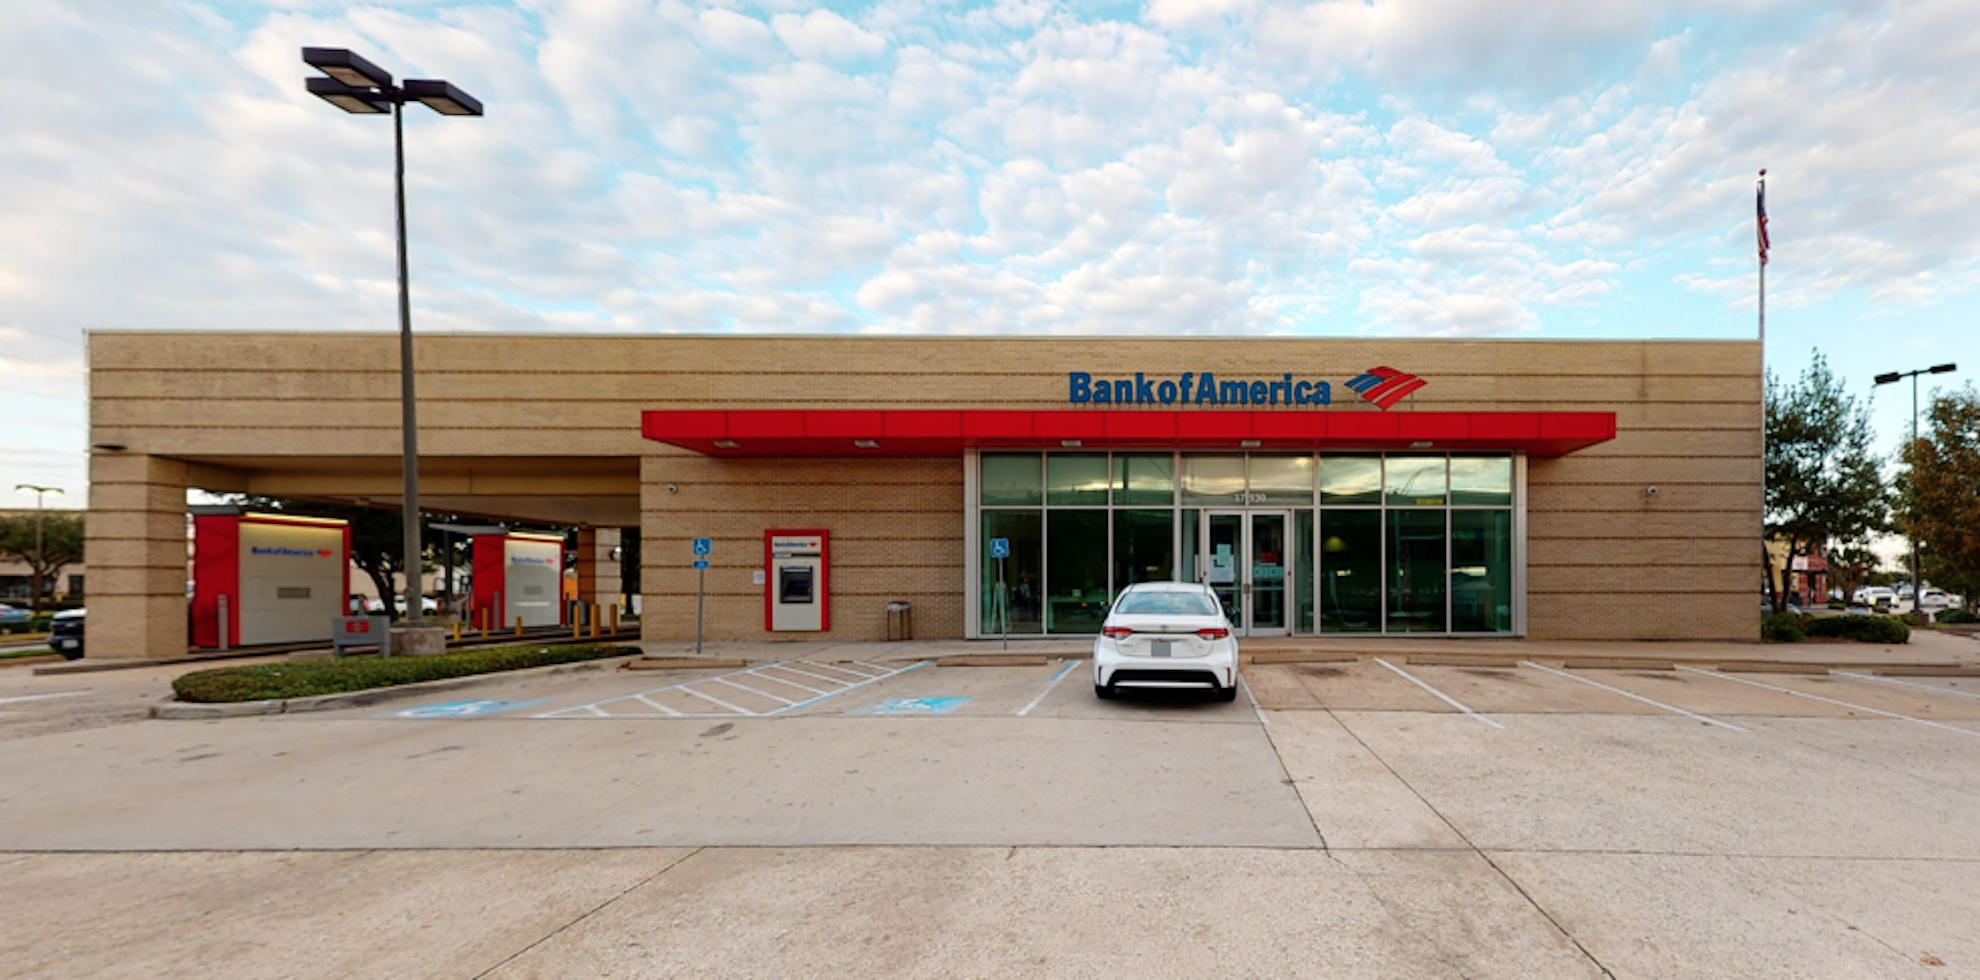 Bank of America financial center with drive-thru ATM and teller | 17930 Spring Cypress Rd, Cypress, TX 77429